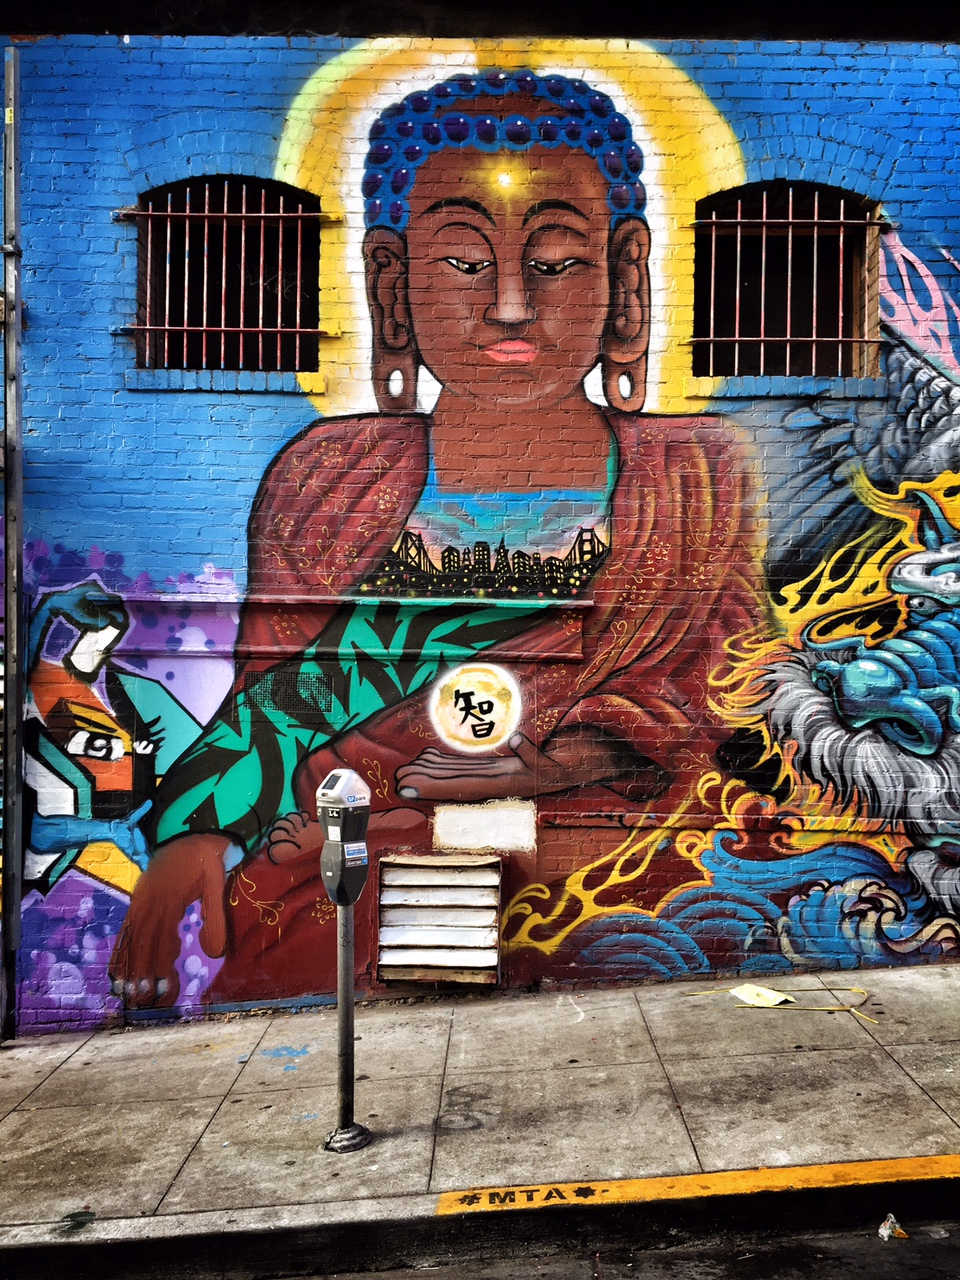 a closer look at that graffiti from chinatown